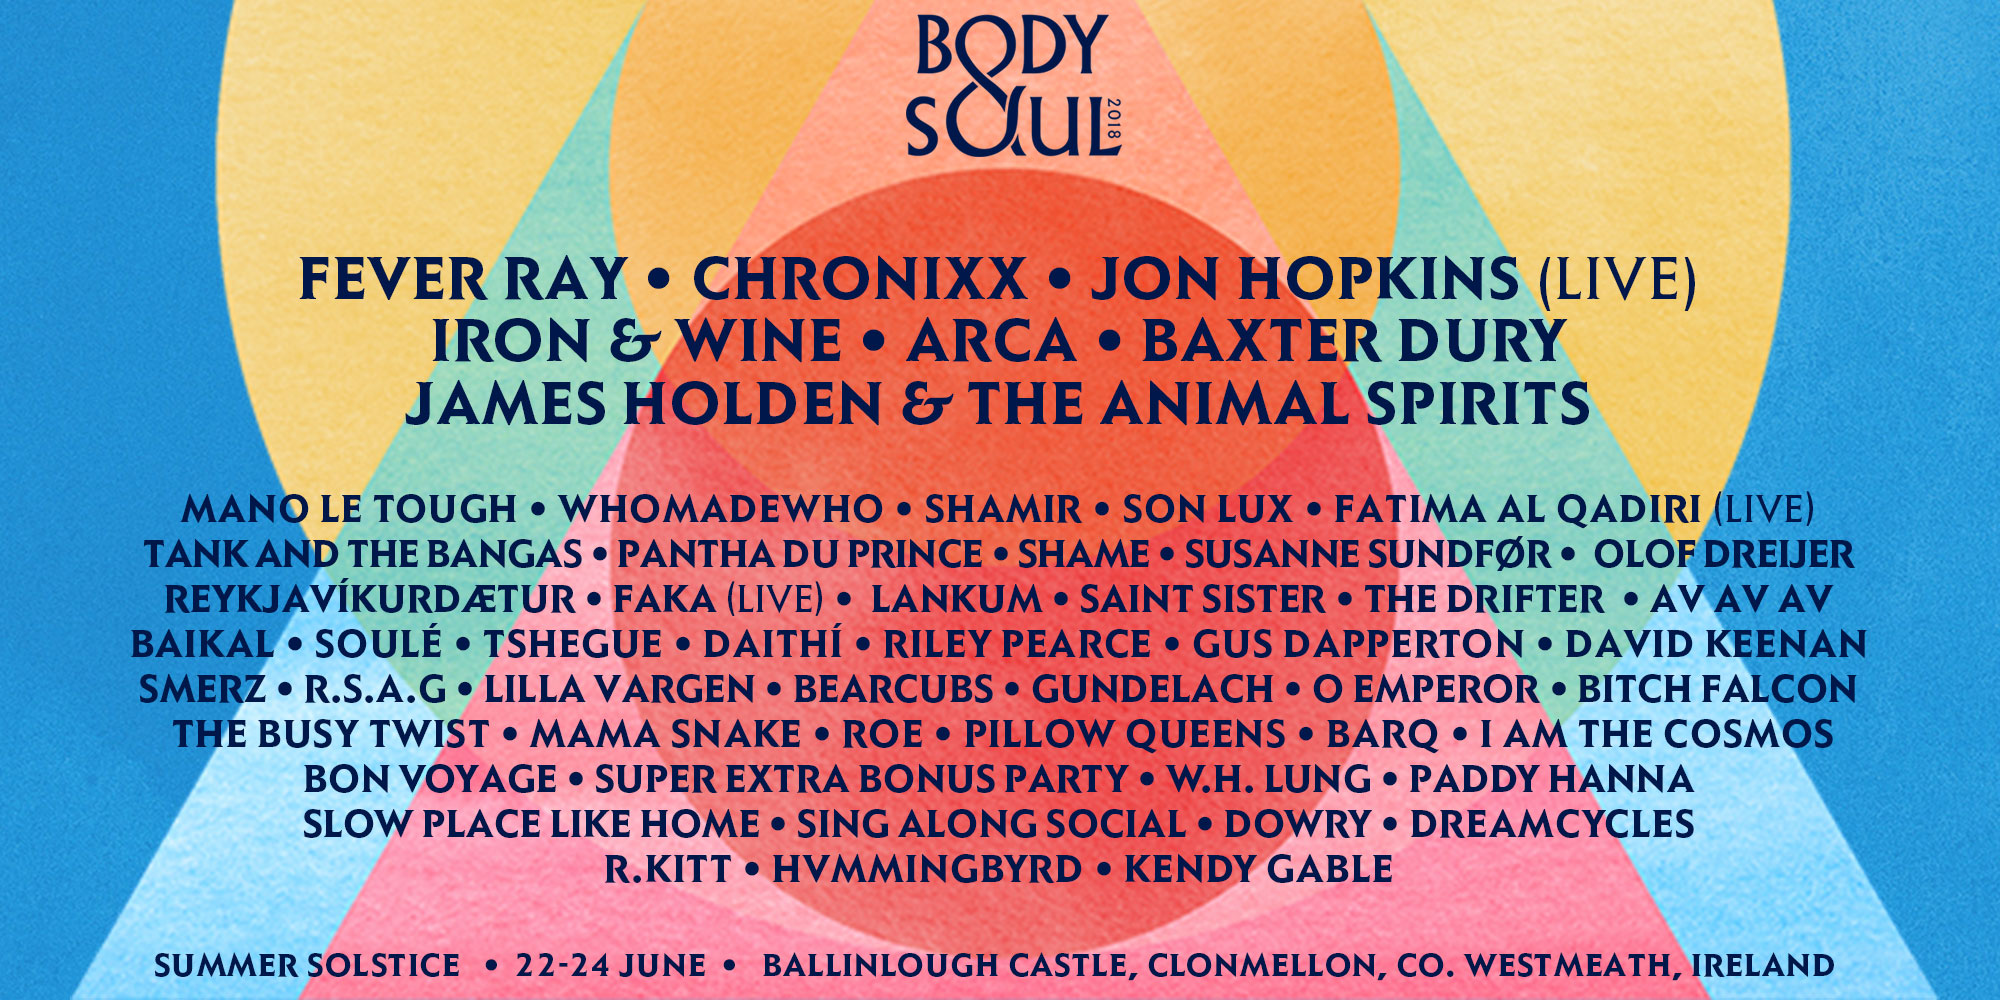 Tickets for Body&Soul 2018 - Campervan Ticket in Co.Westmeath from Ticketbooth Europe